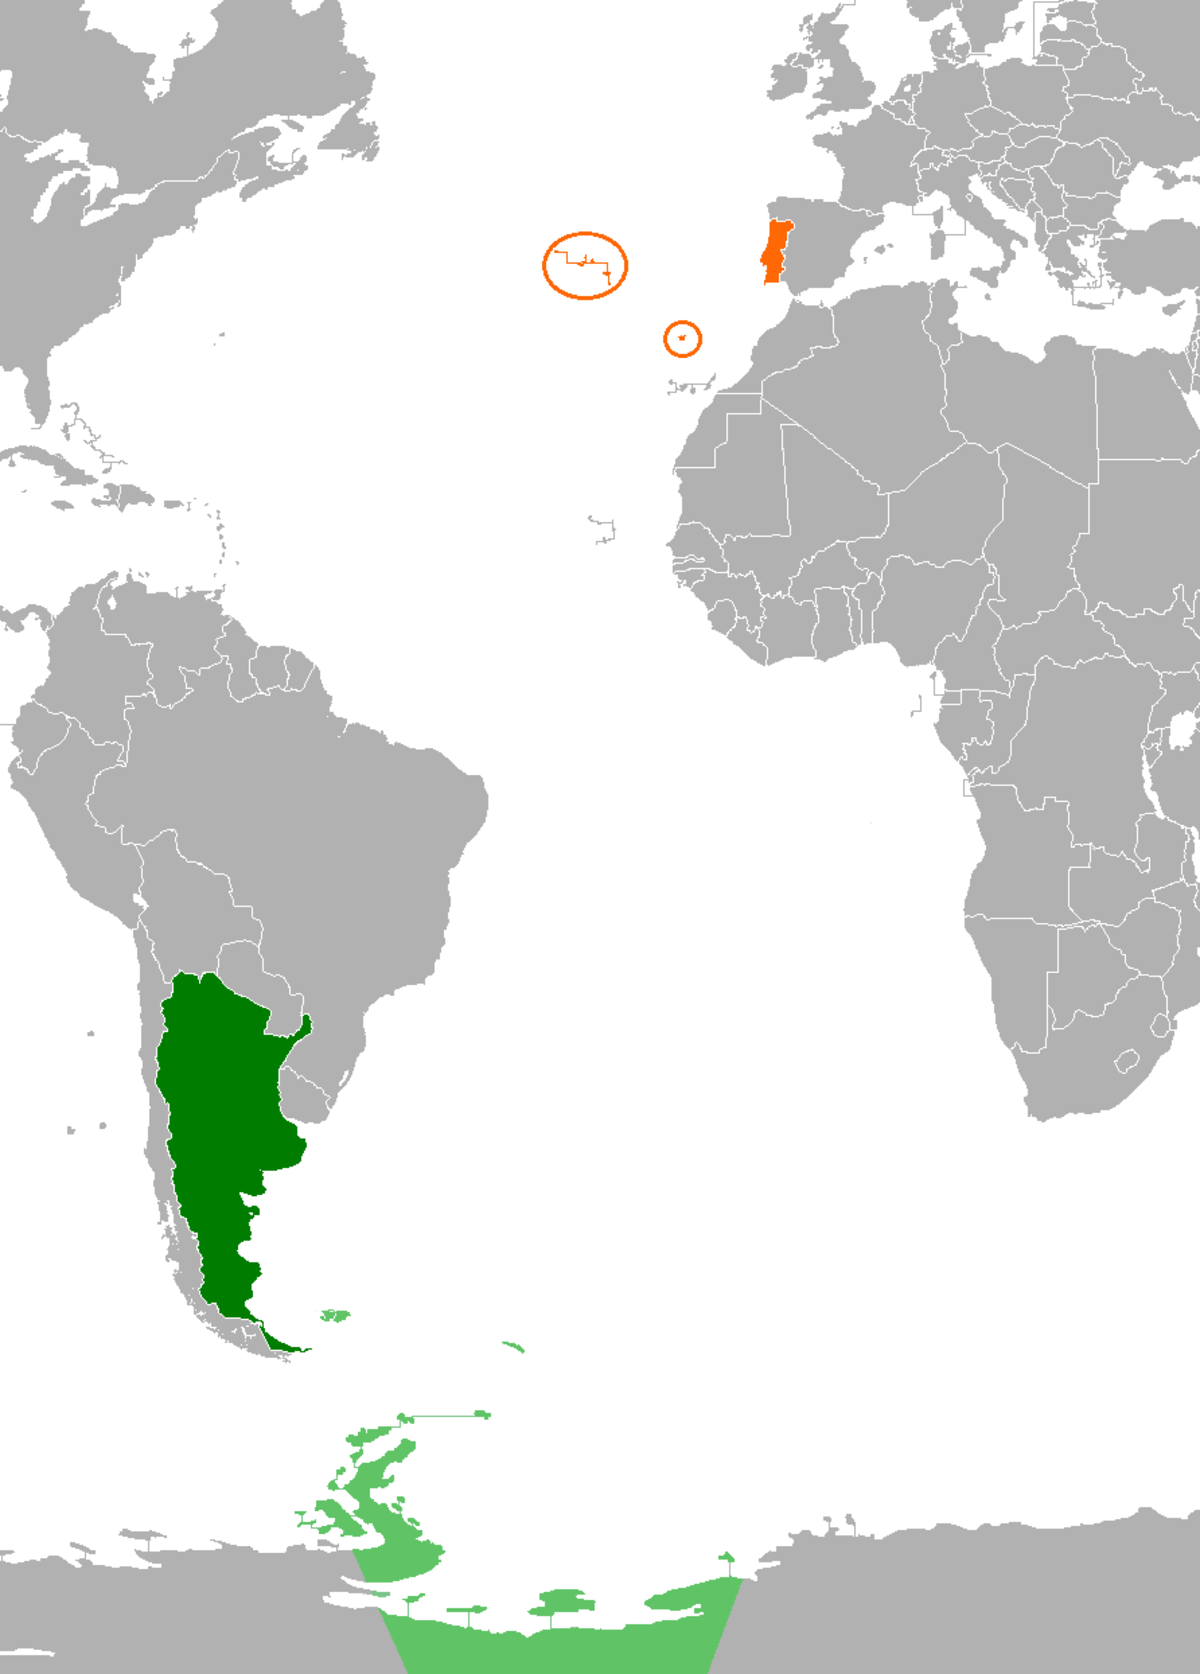 map of brazil and portugal relationship